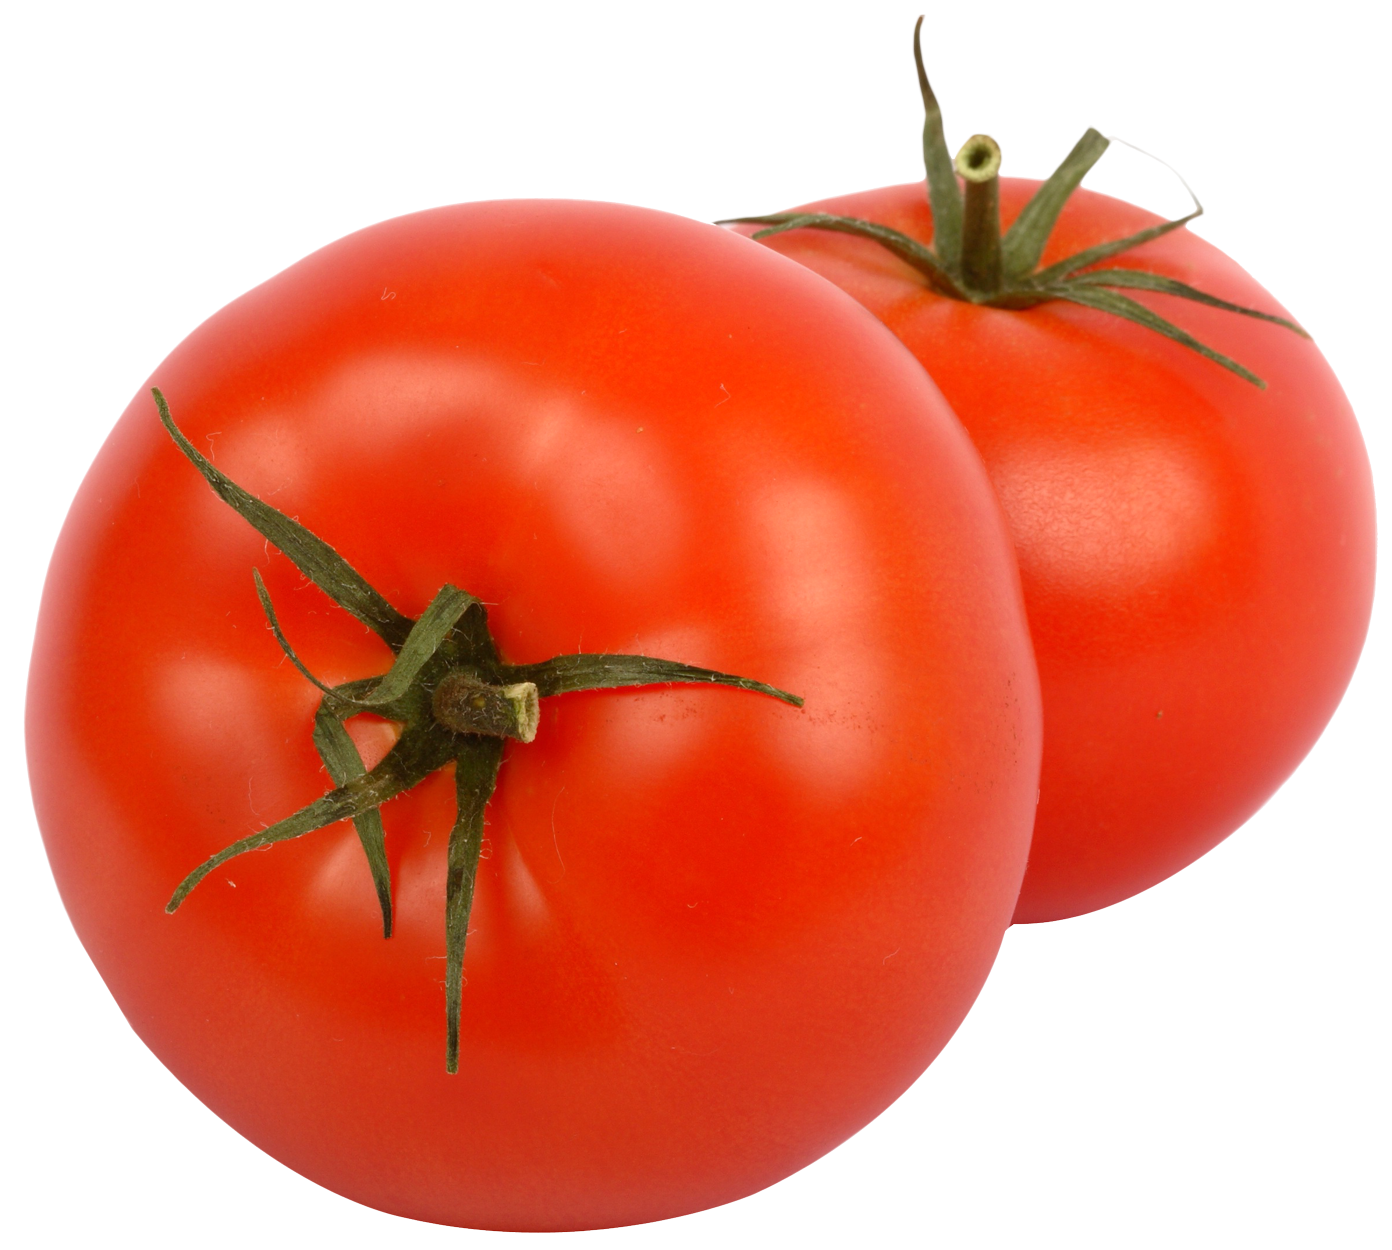 Two Juicy Tomato PNG Image